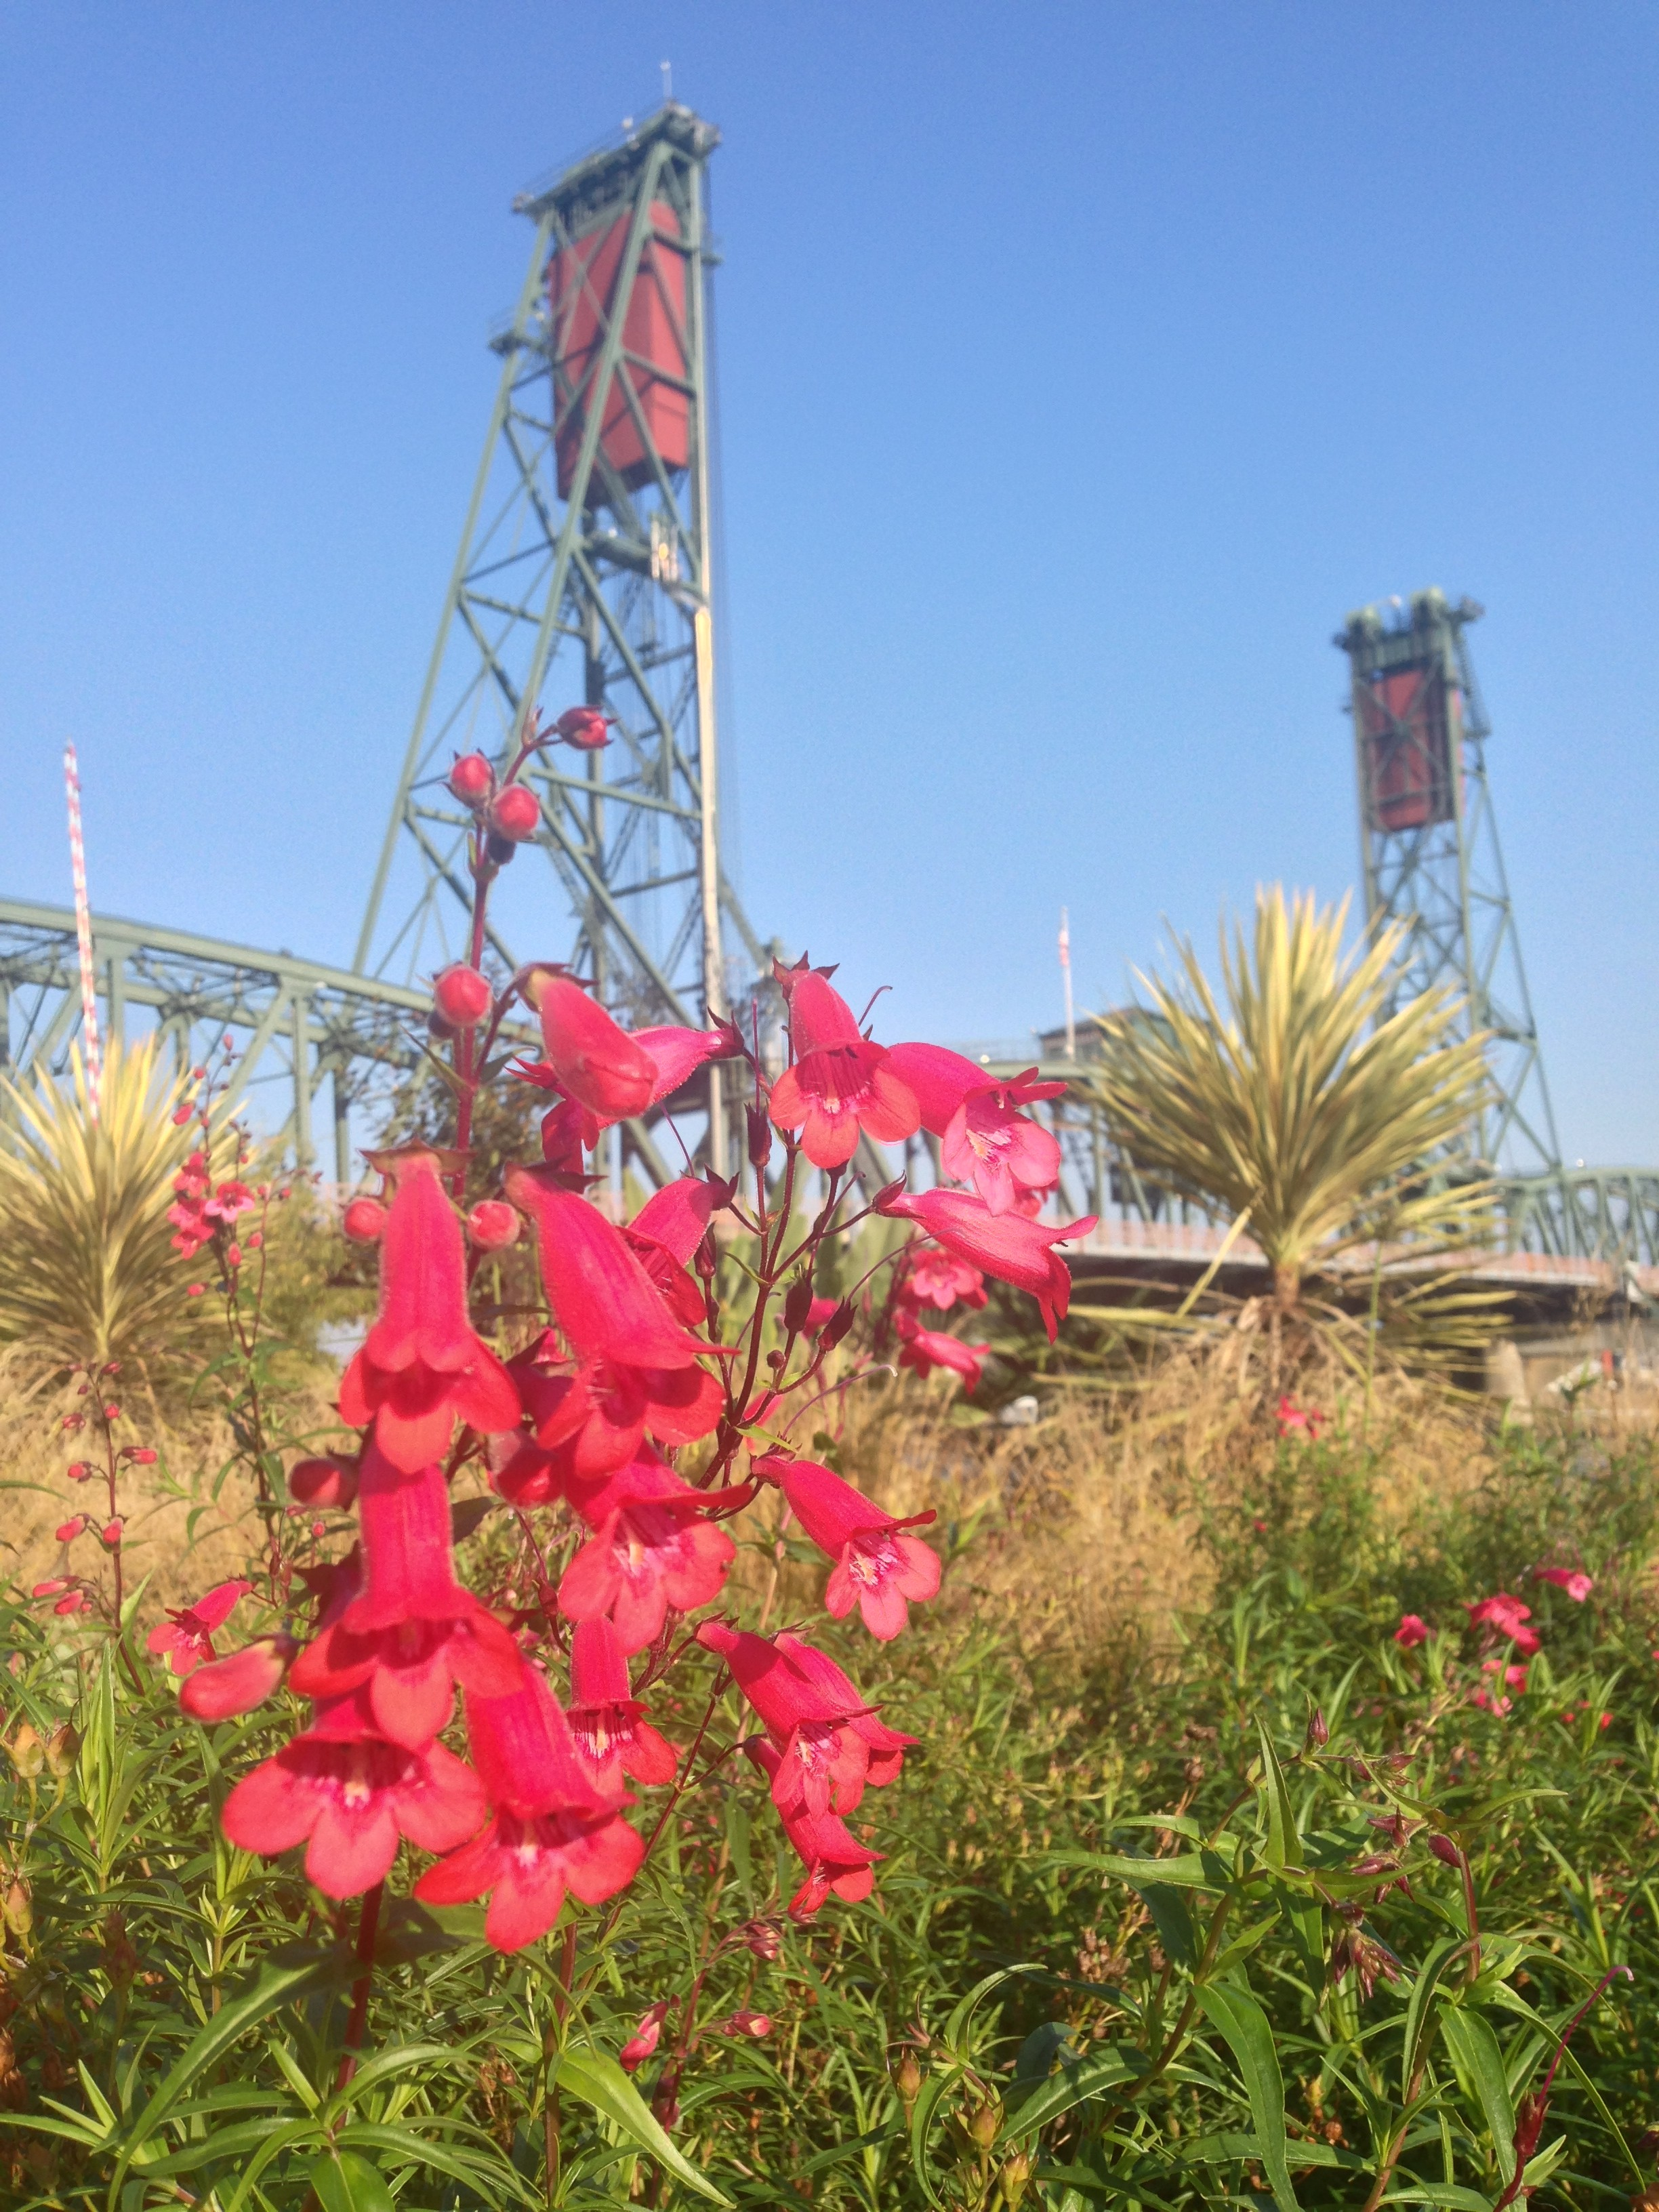 Flowers in front of the Hawthorne Bridge, Portland, Oregon